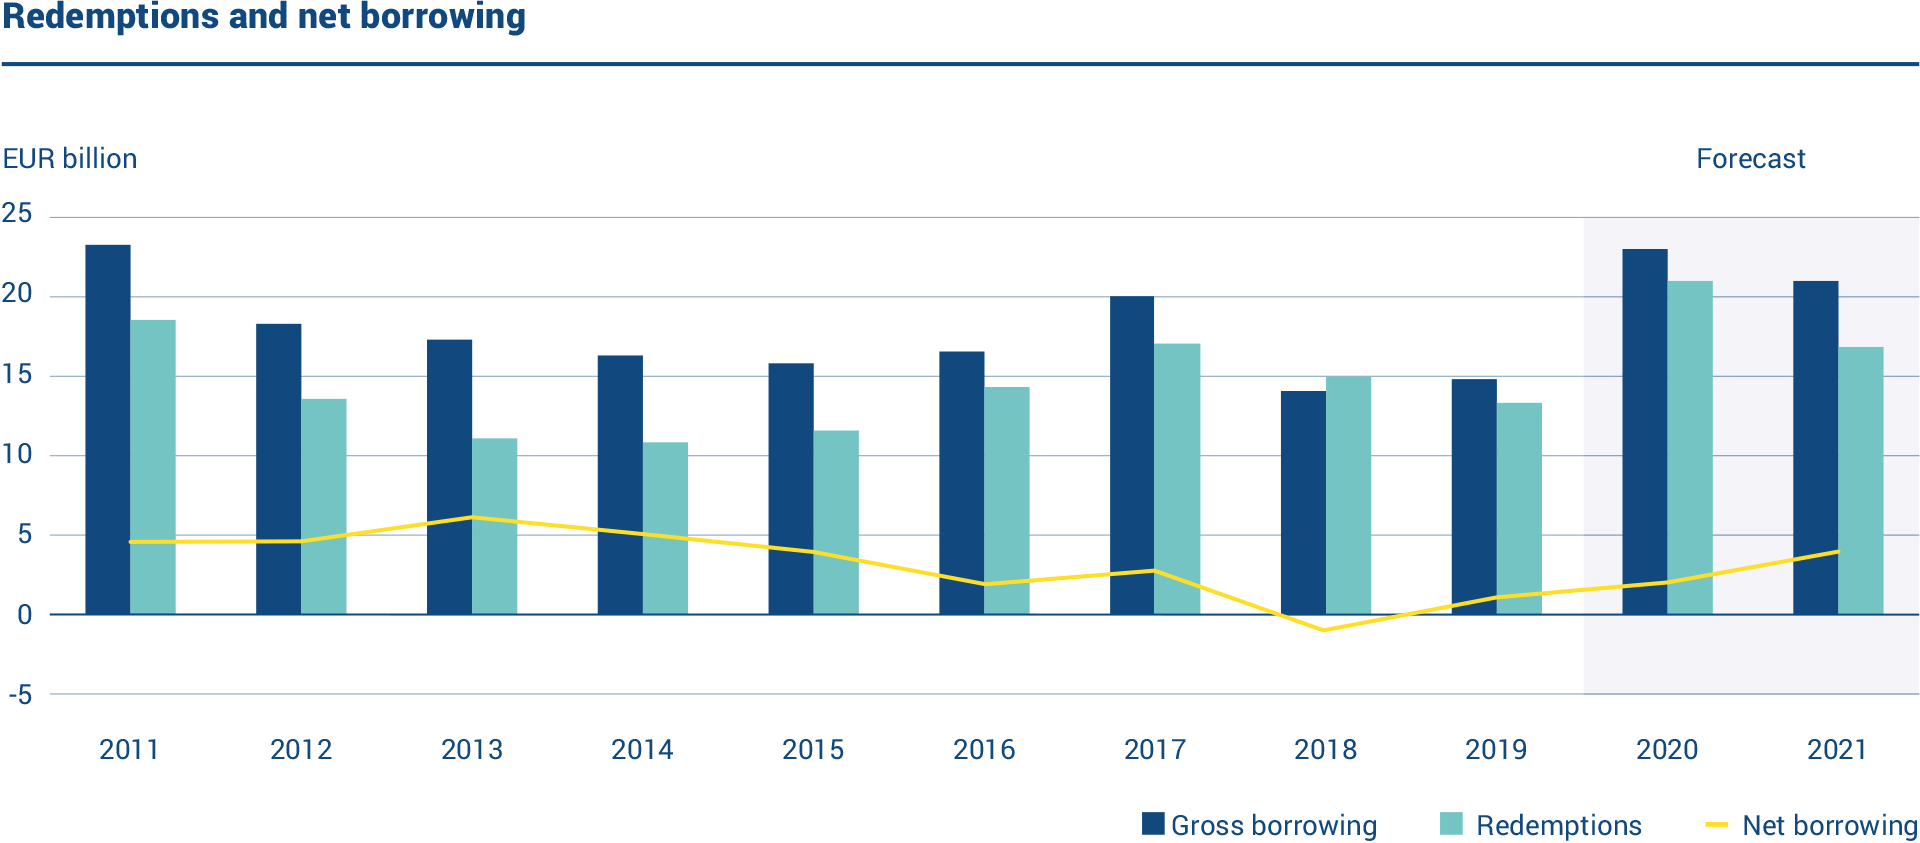 The graph shows annual gross borrowing, redemptions and net borrowing in 2011–2021. Redemptions of EUR 13.4 billion took place in 2019 while net borrowing amounted to EUR 1.40 billion.